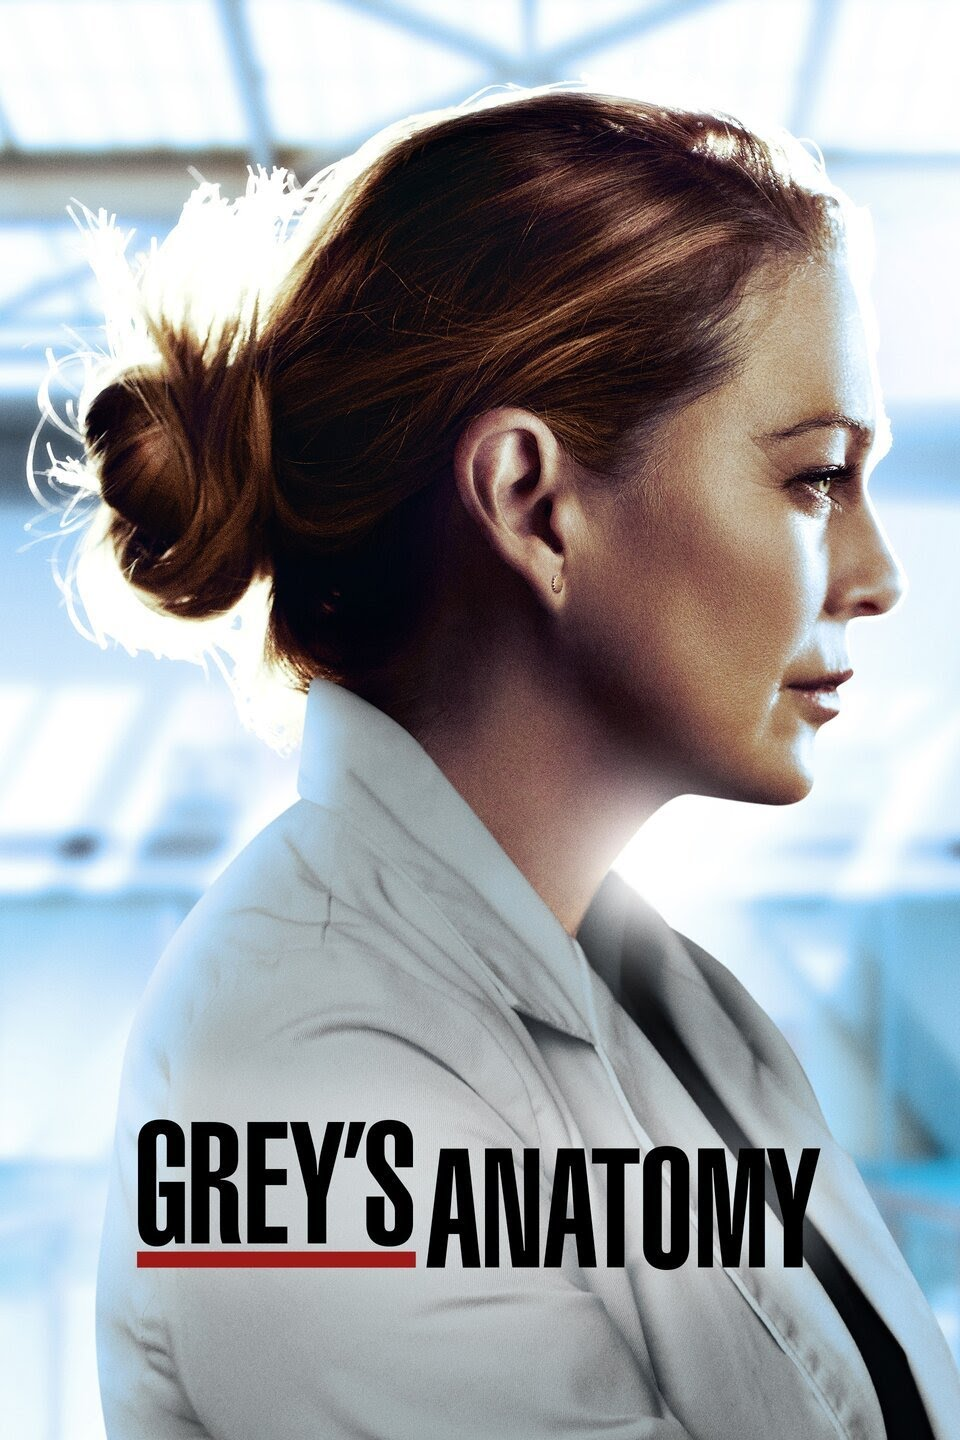 DOWNLOAD Greys Anatomy Season 17 Episode 10 (S17E10) Movie Series Subtitles